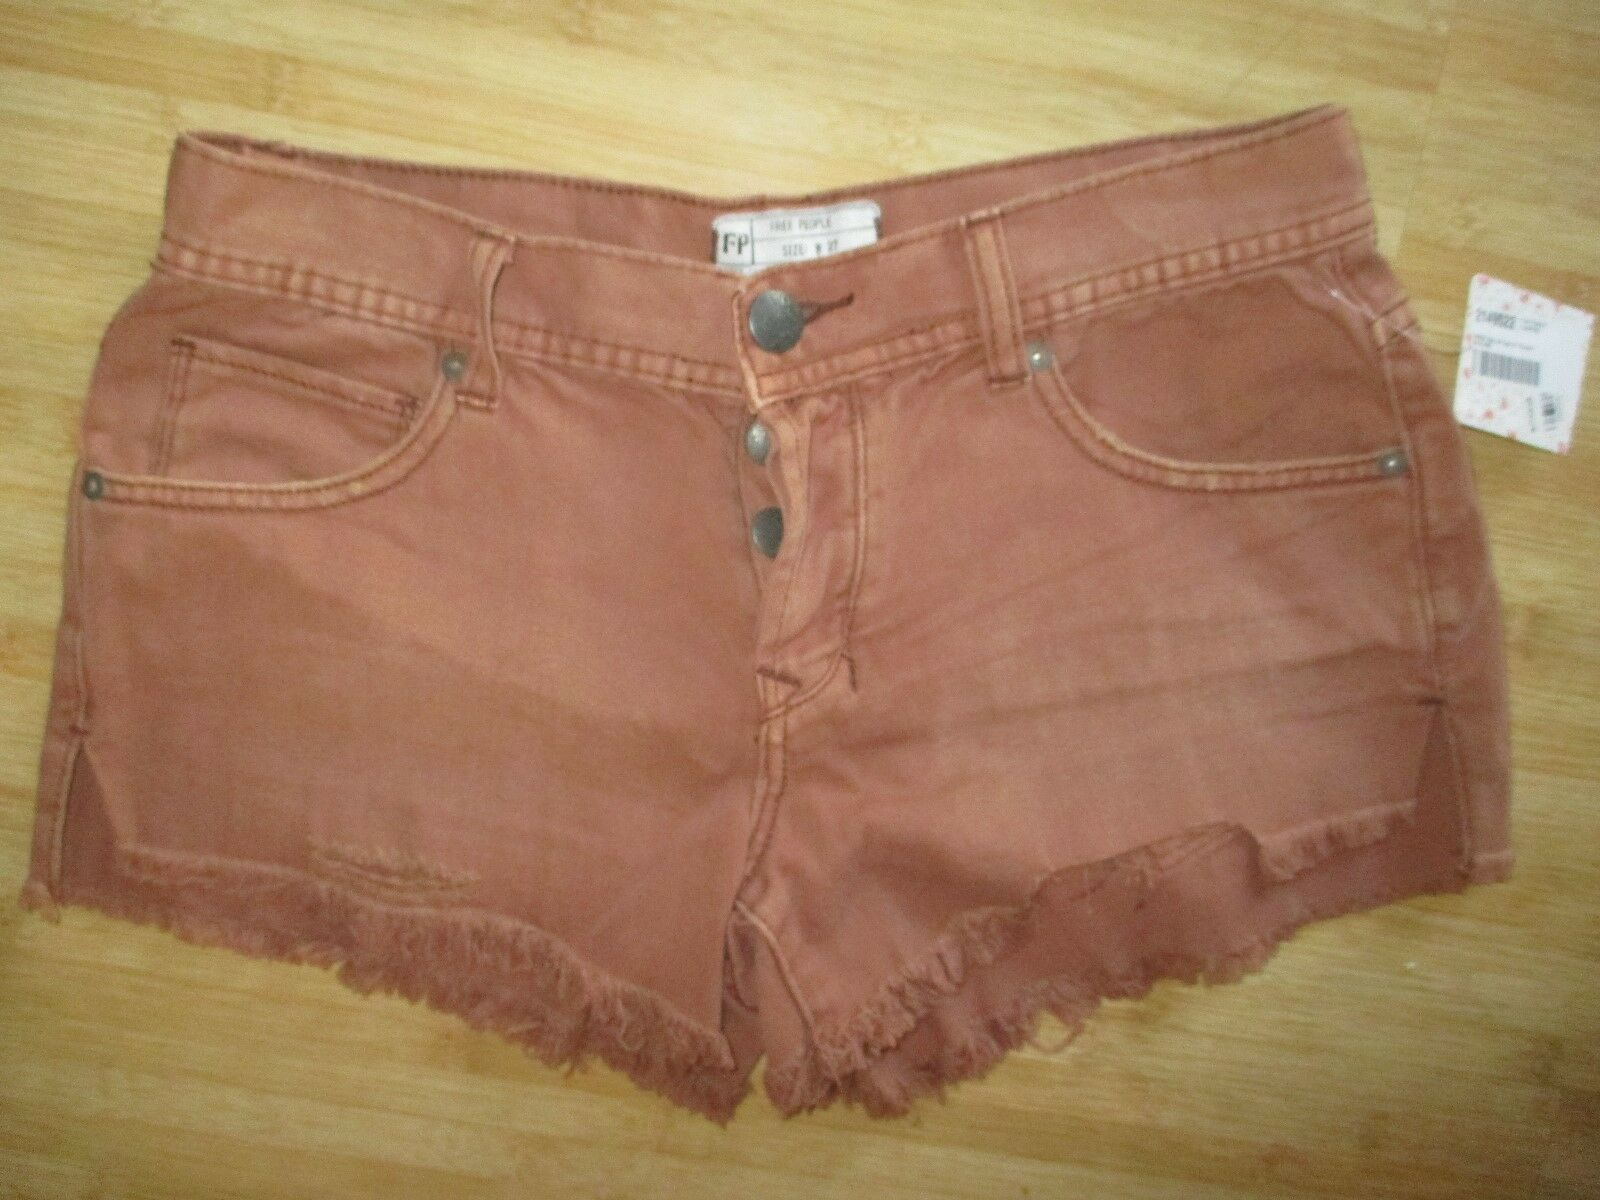 NWT Free People LADIES 27 JEAN DENIM Shorts PANTS Distressed Cut Offs bluesh